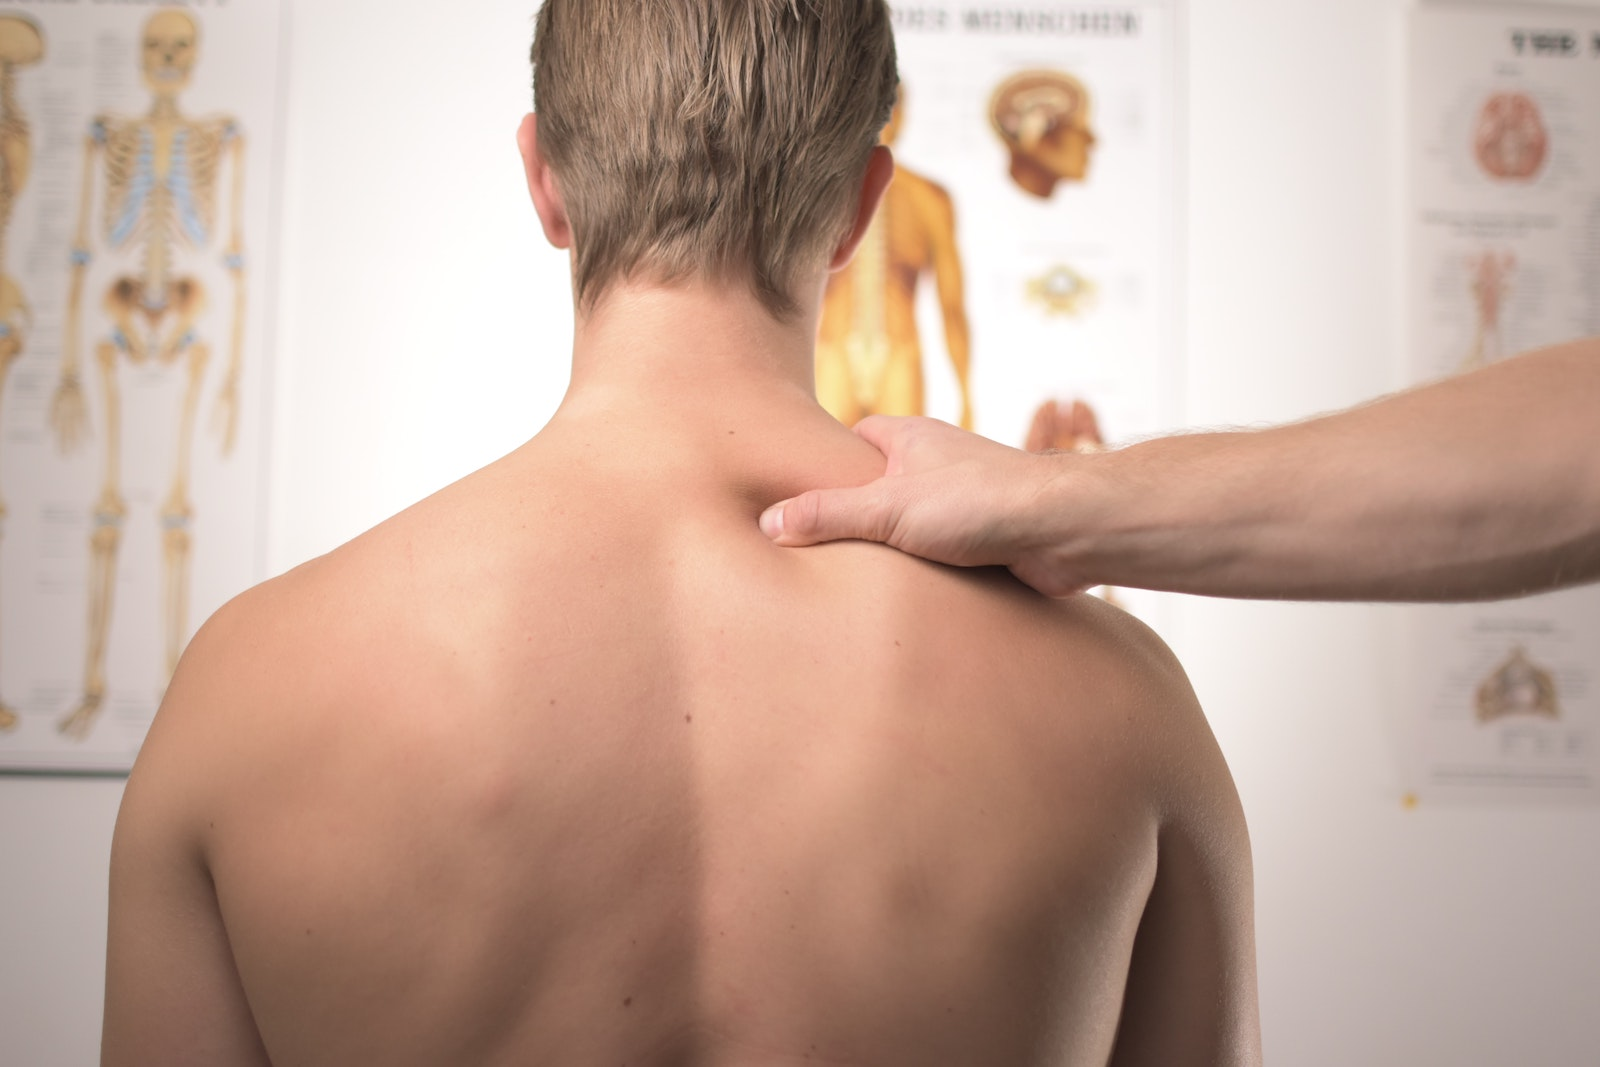 Not just athletes. You need a chiropractor too.